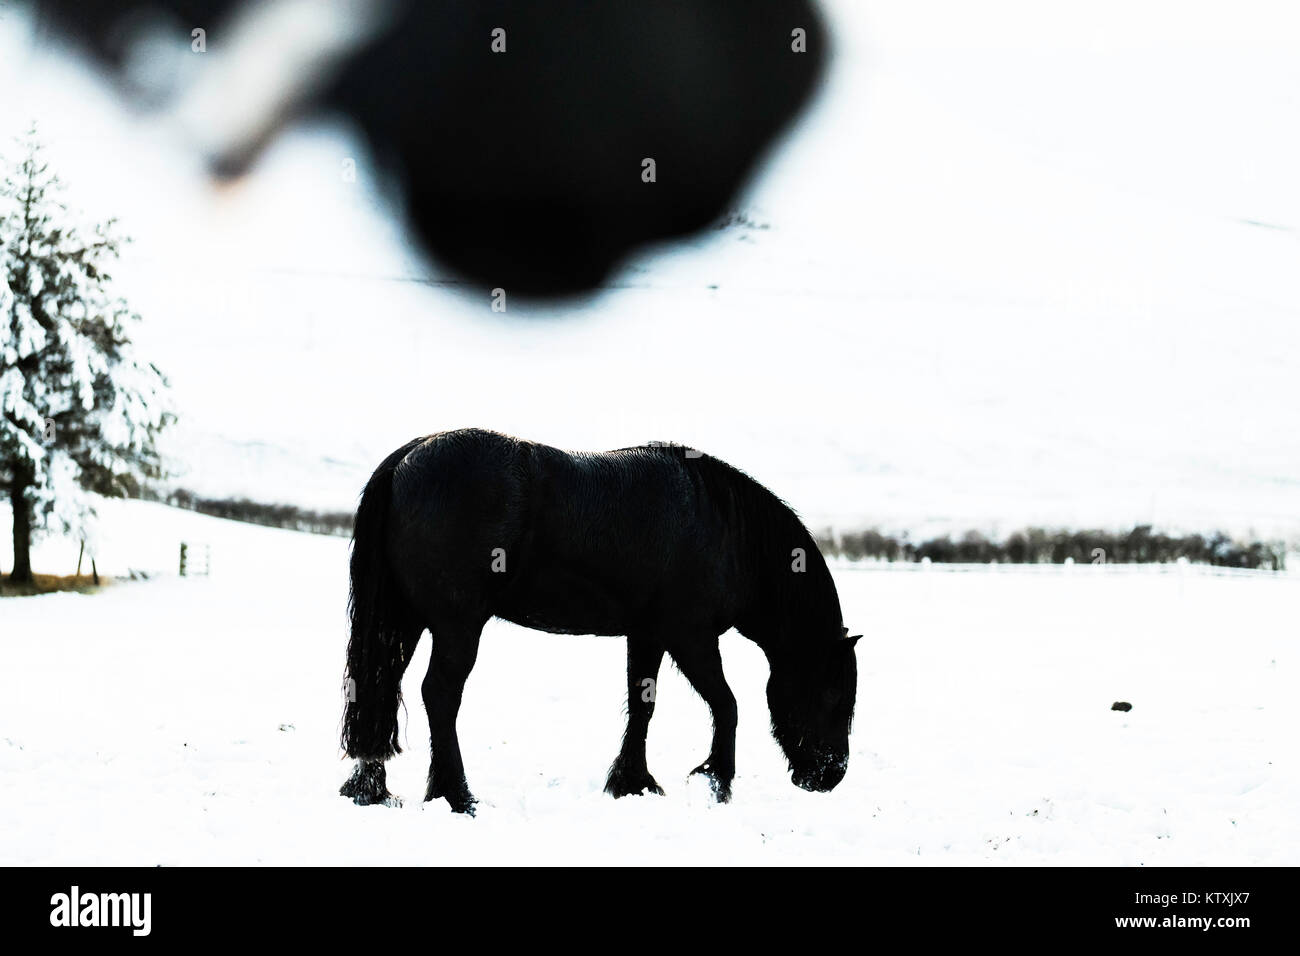 Towford, Jedburgh, Scottish Borders, UK. 26th December 2017. Fell ponies graze amongst deep snow on Boxing Day. - Stock Image